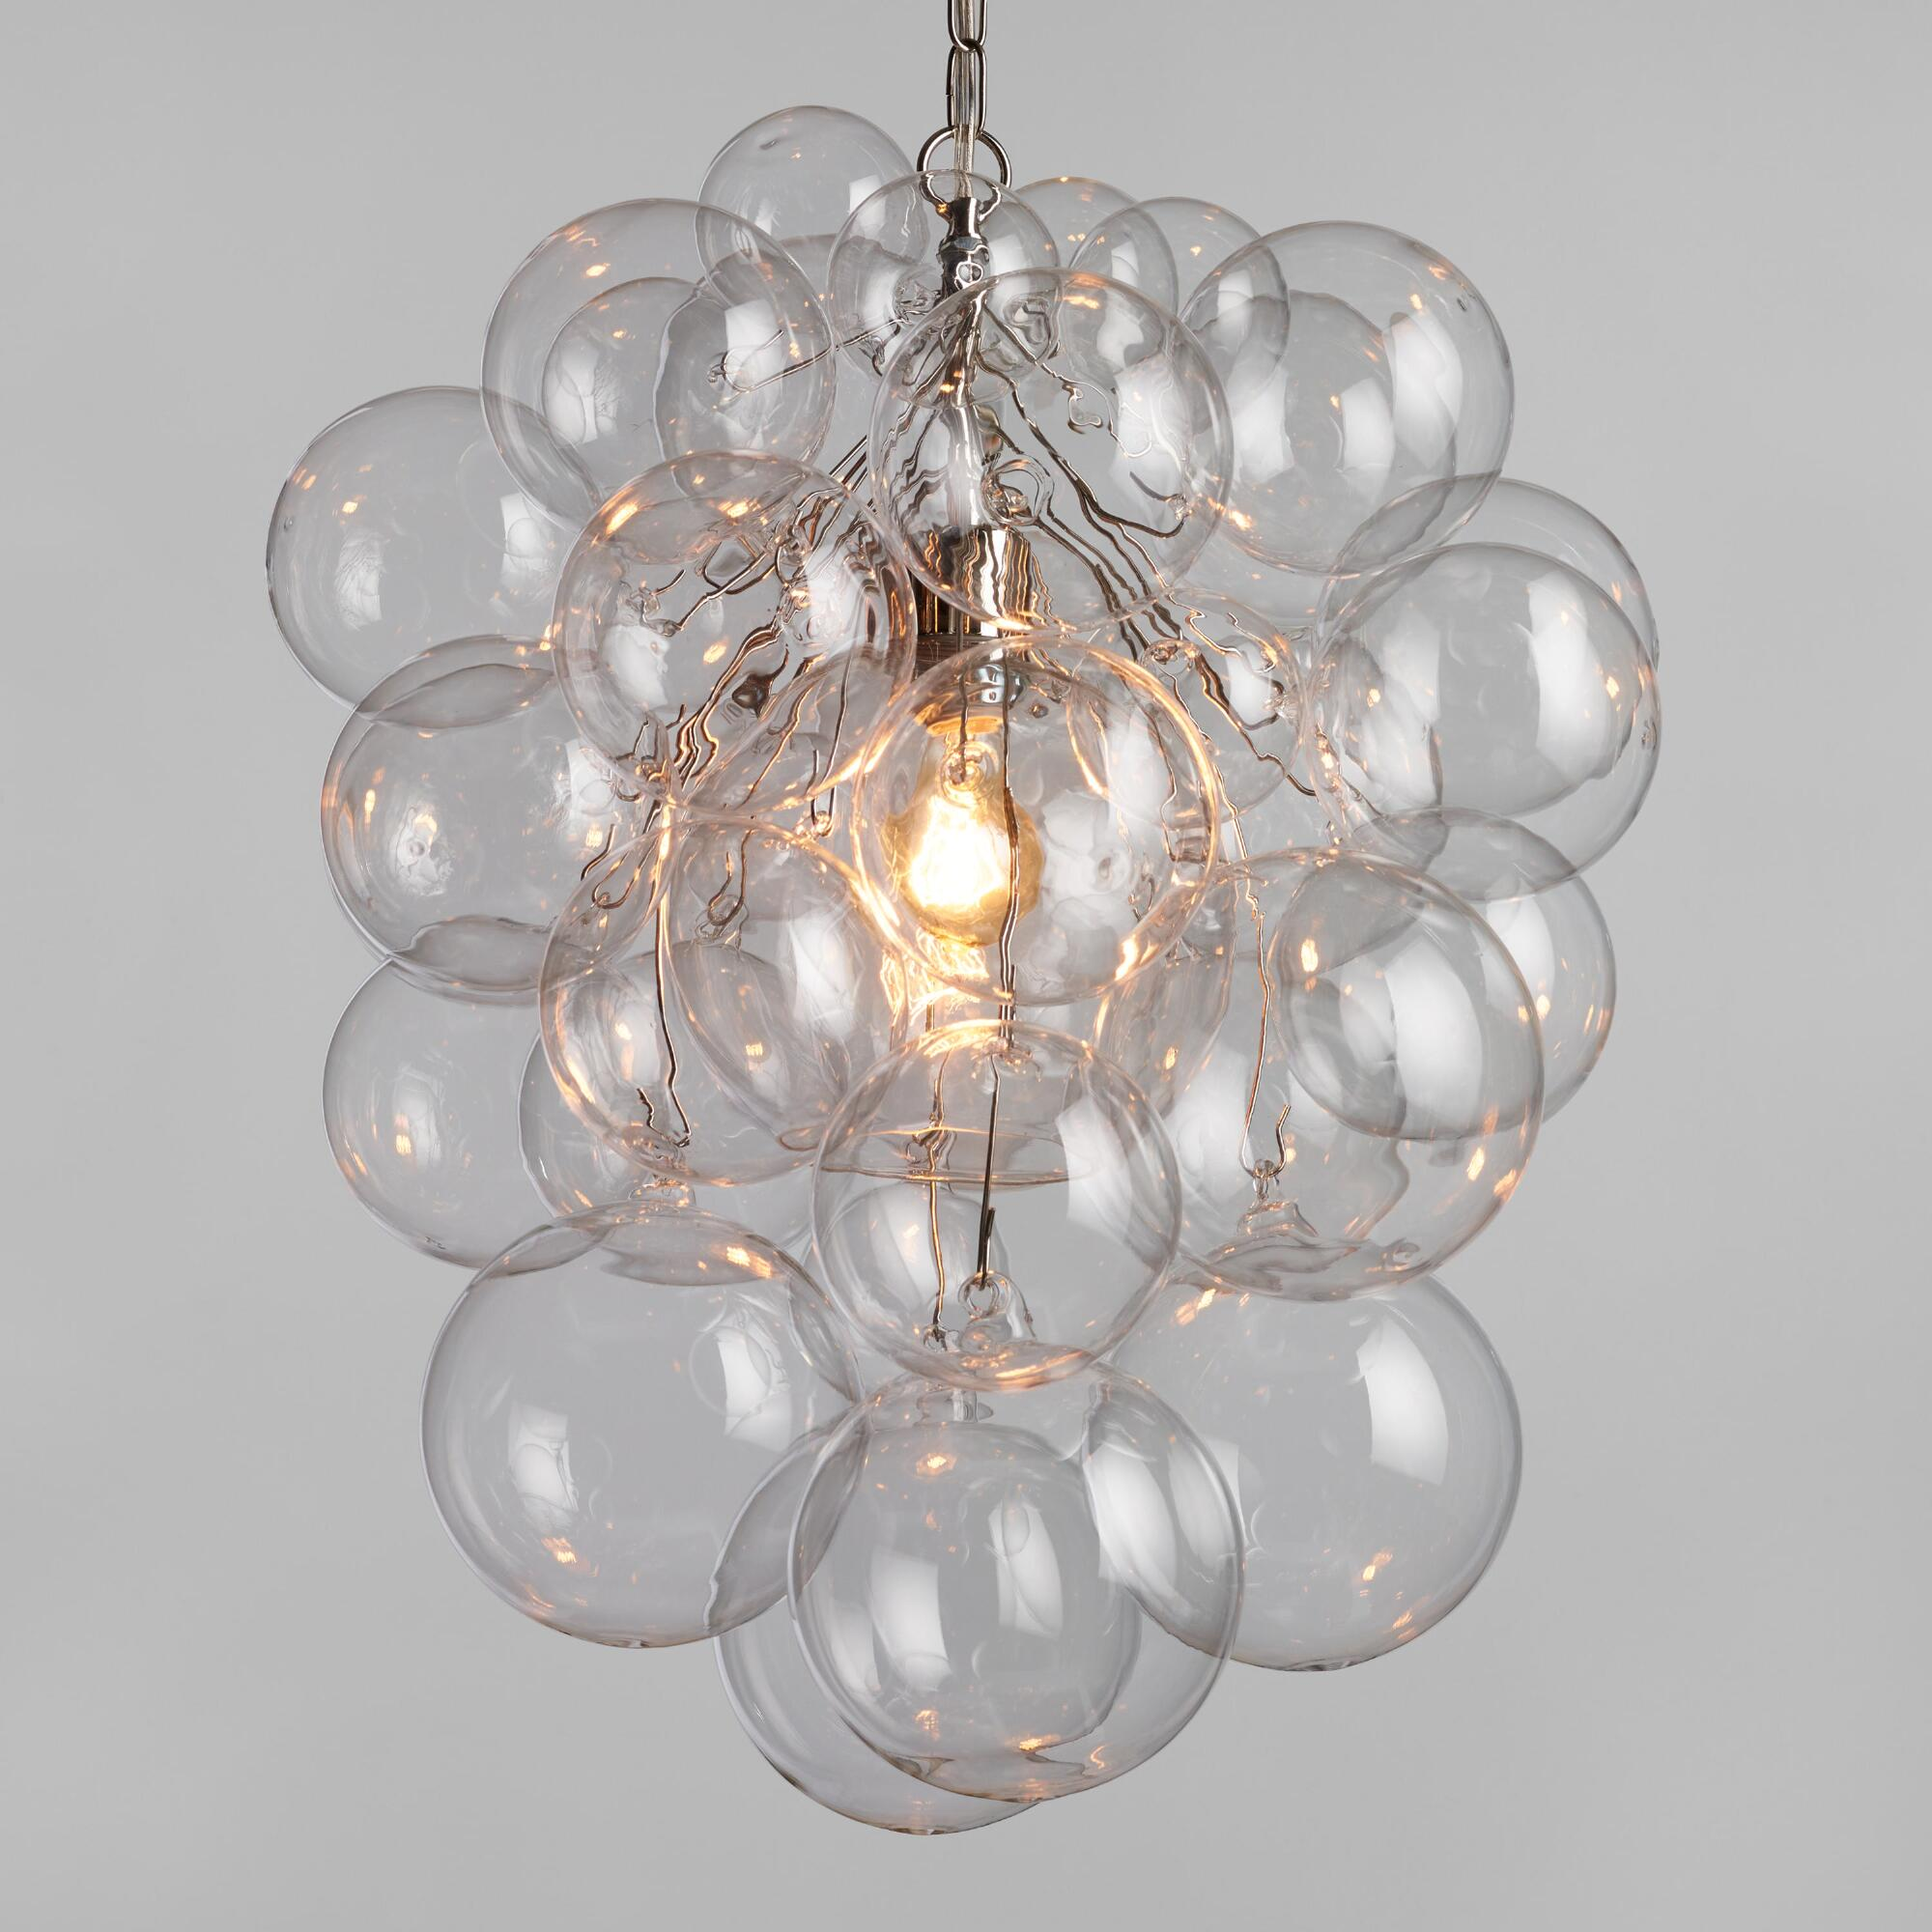 Bubble glass orb chandelier world market - Light fixtures chandeliers ...